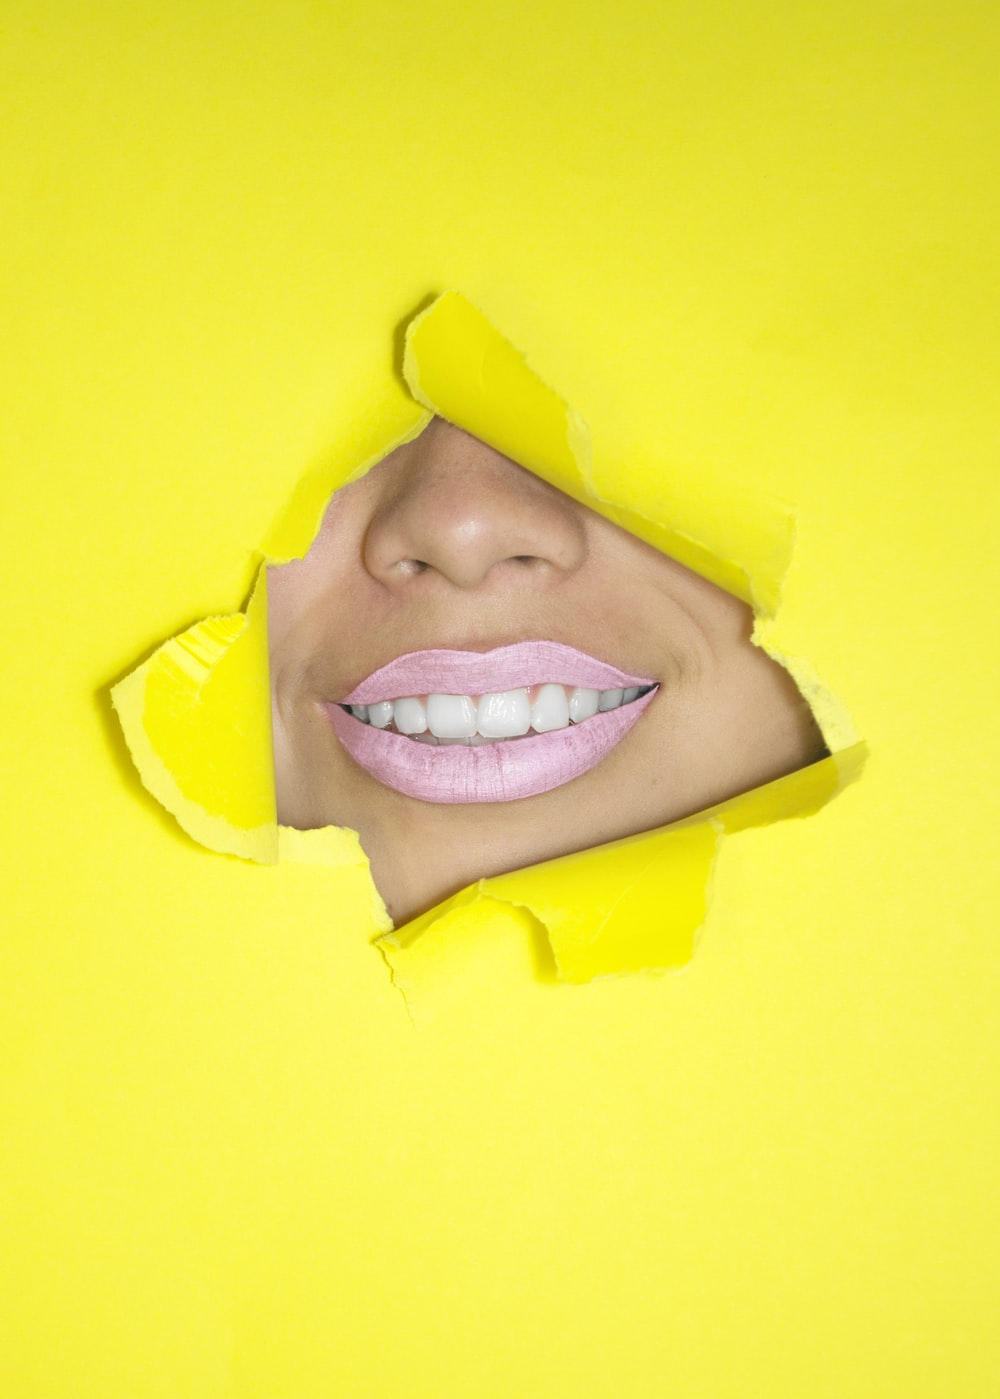 ripped yellow paper showing woman's nose and lips